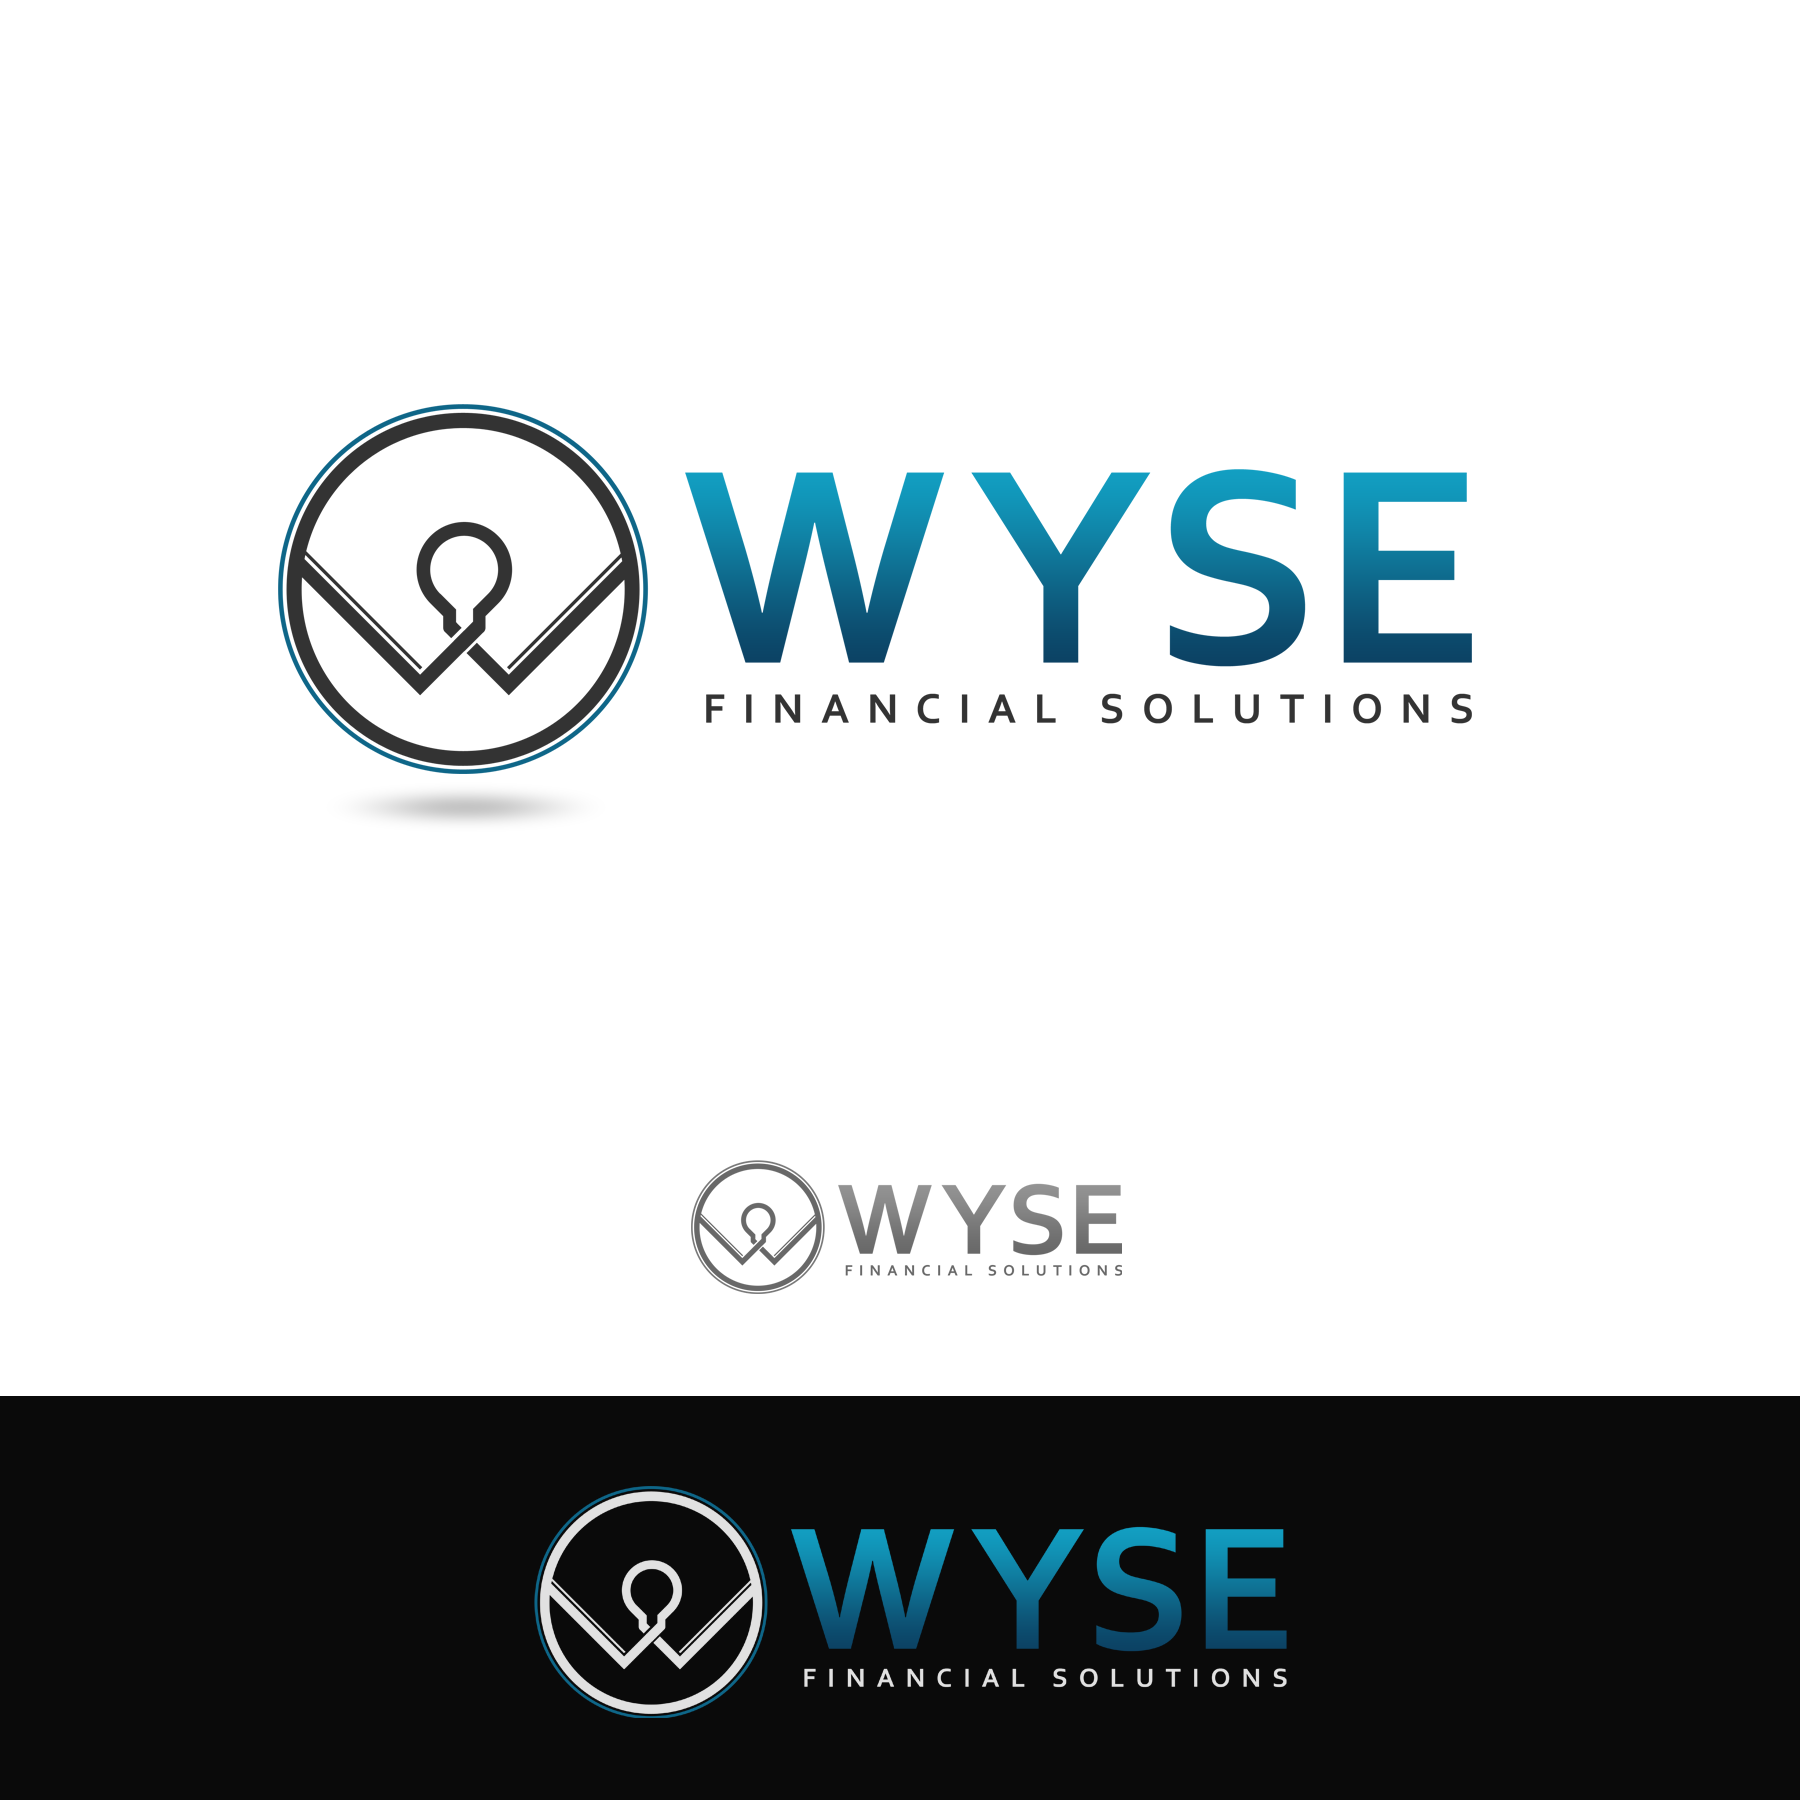 Logo Design by omARTist - Entry No. 133 in the Logo Design Contest Fun Logo Design for Wyse Financial Solutions.